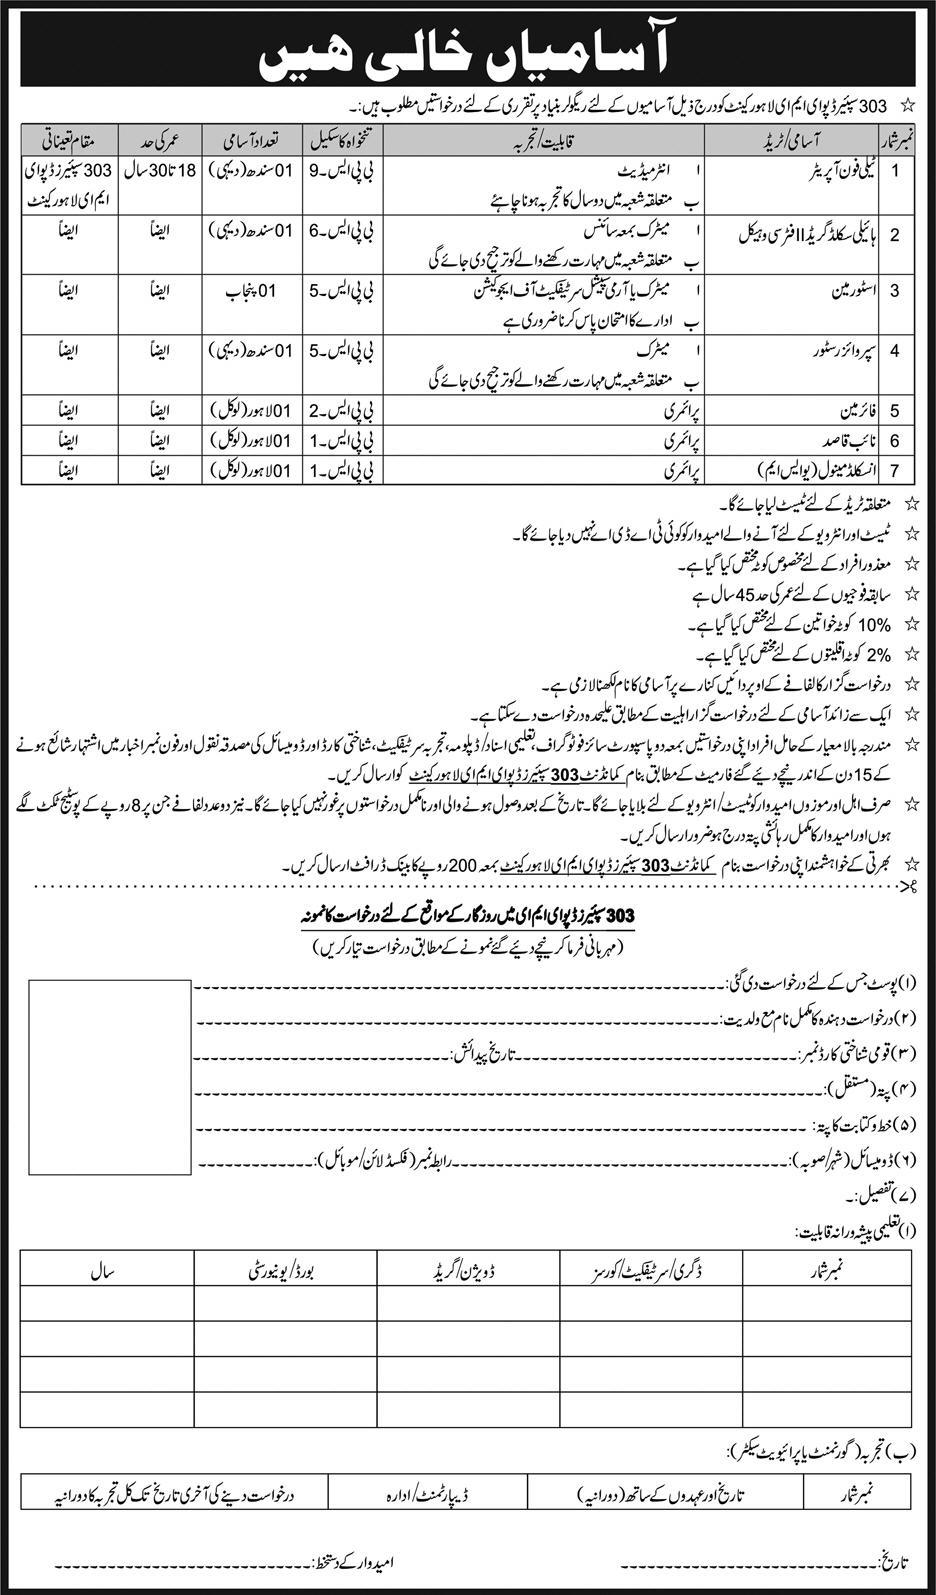 303 Spare Depot EME Lahore Cantt Latest Jobs 2018